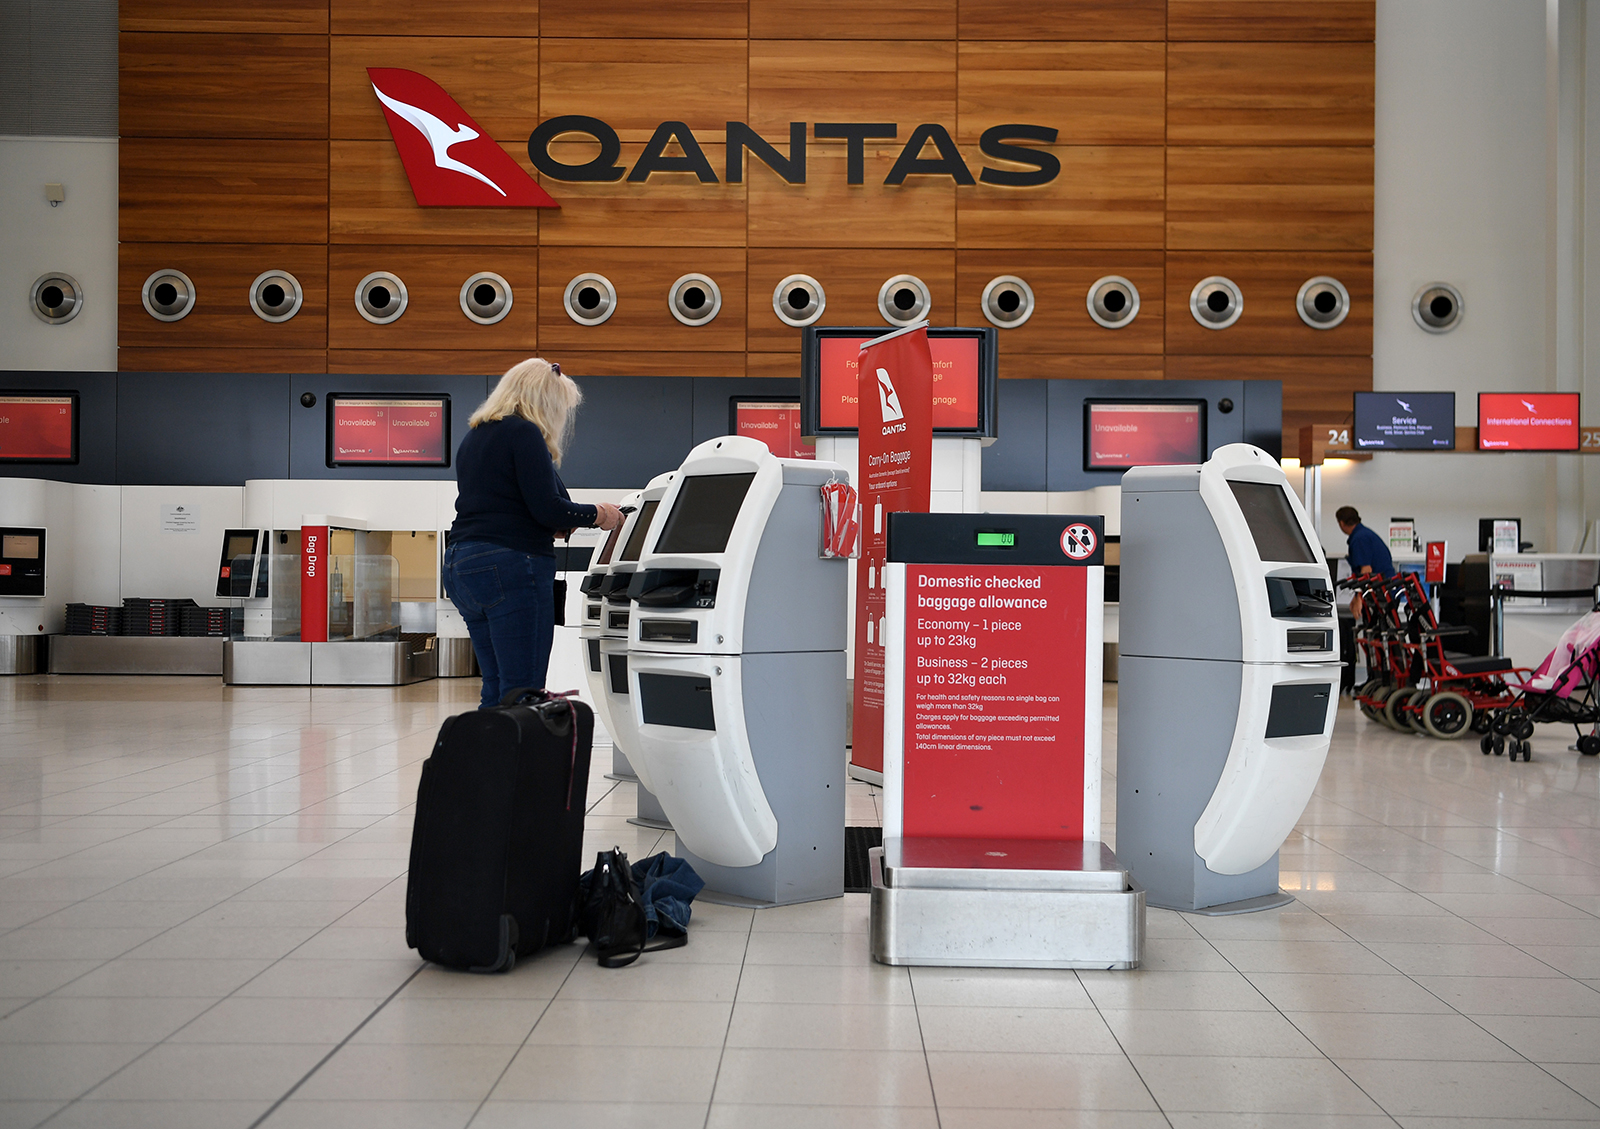 Passengers check in for a Qantas flight at Adelaide Airport on April 1, in Adelaide, Australia.